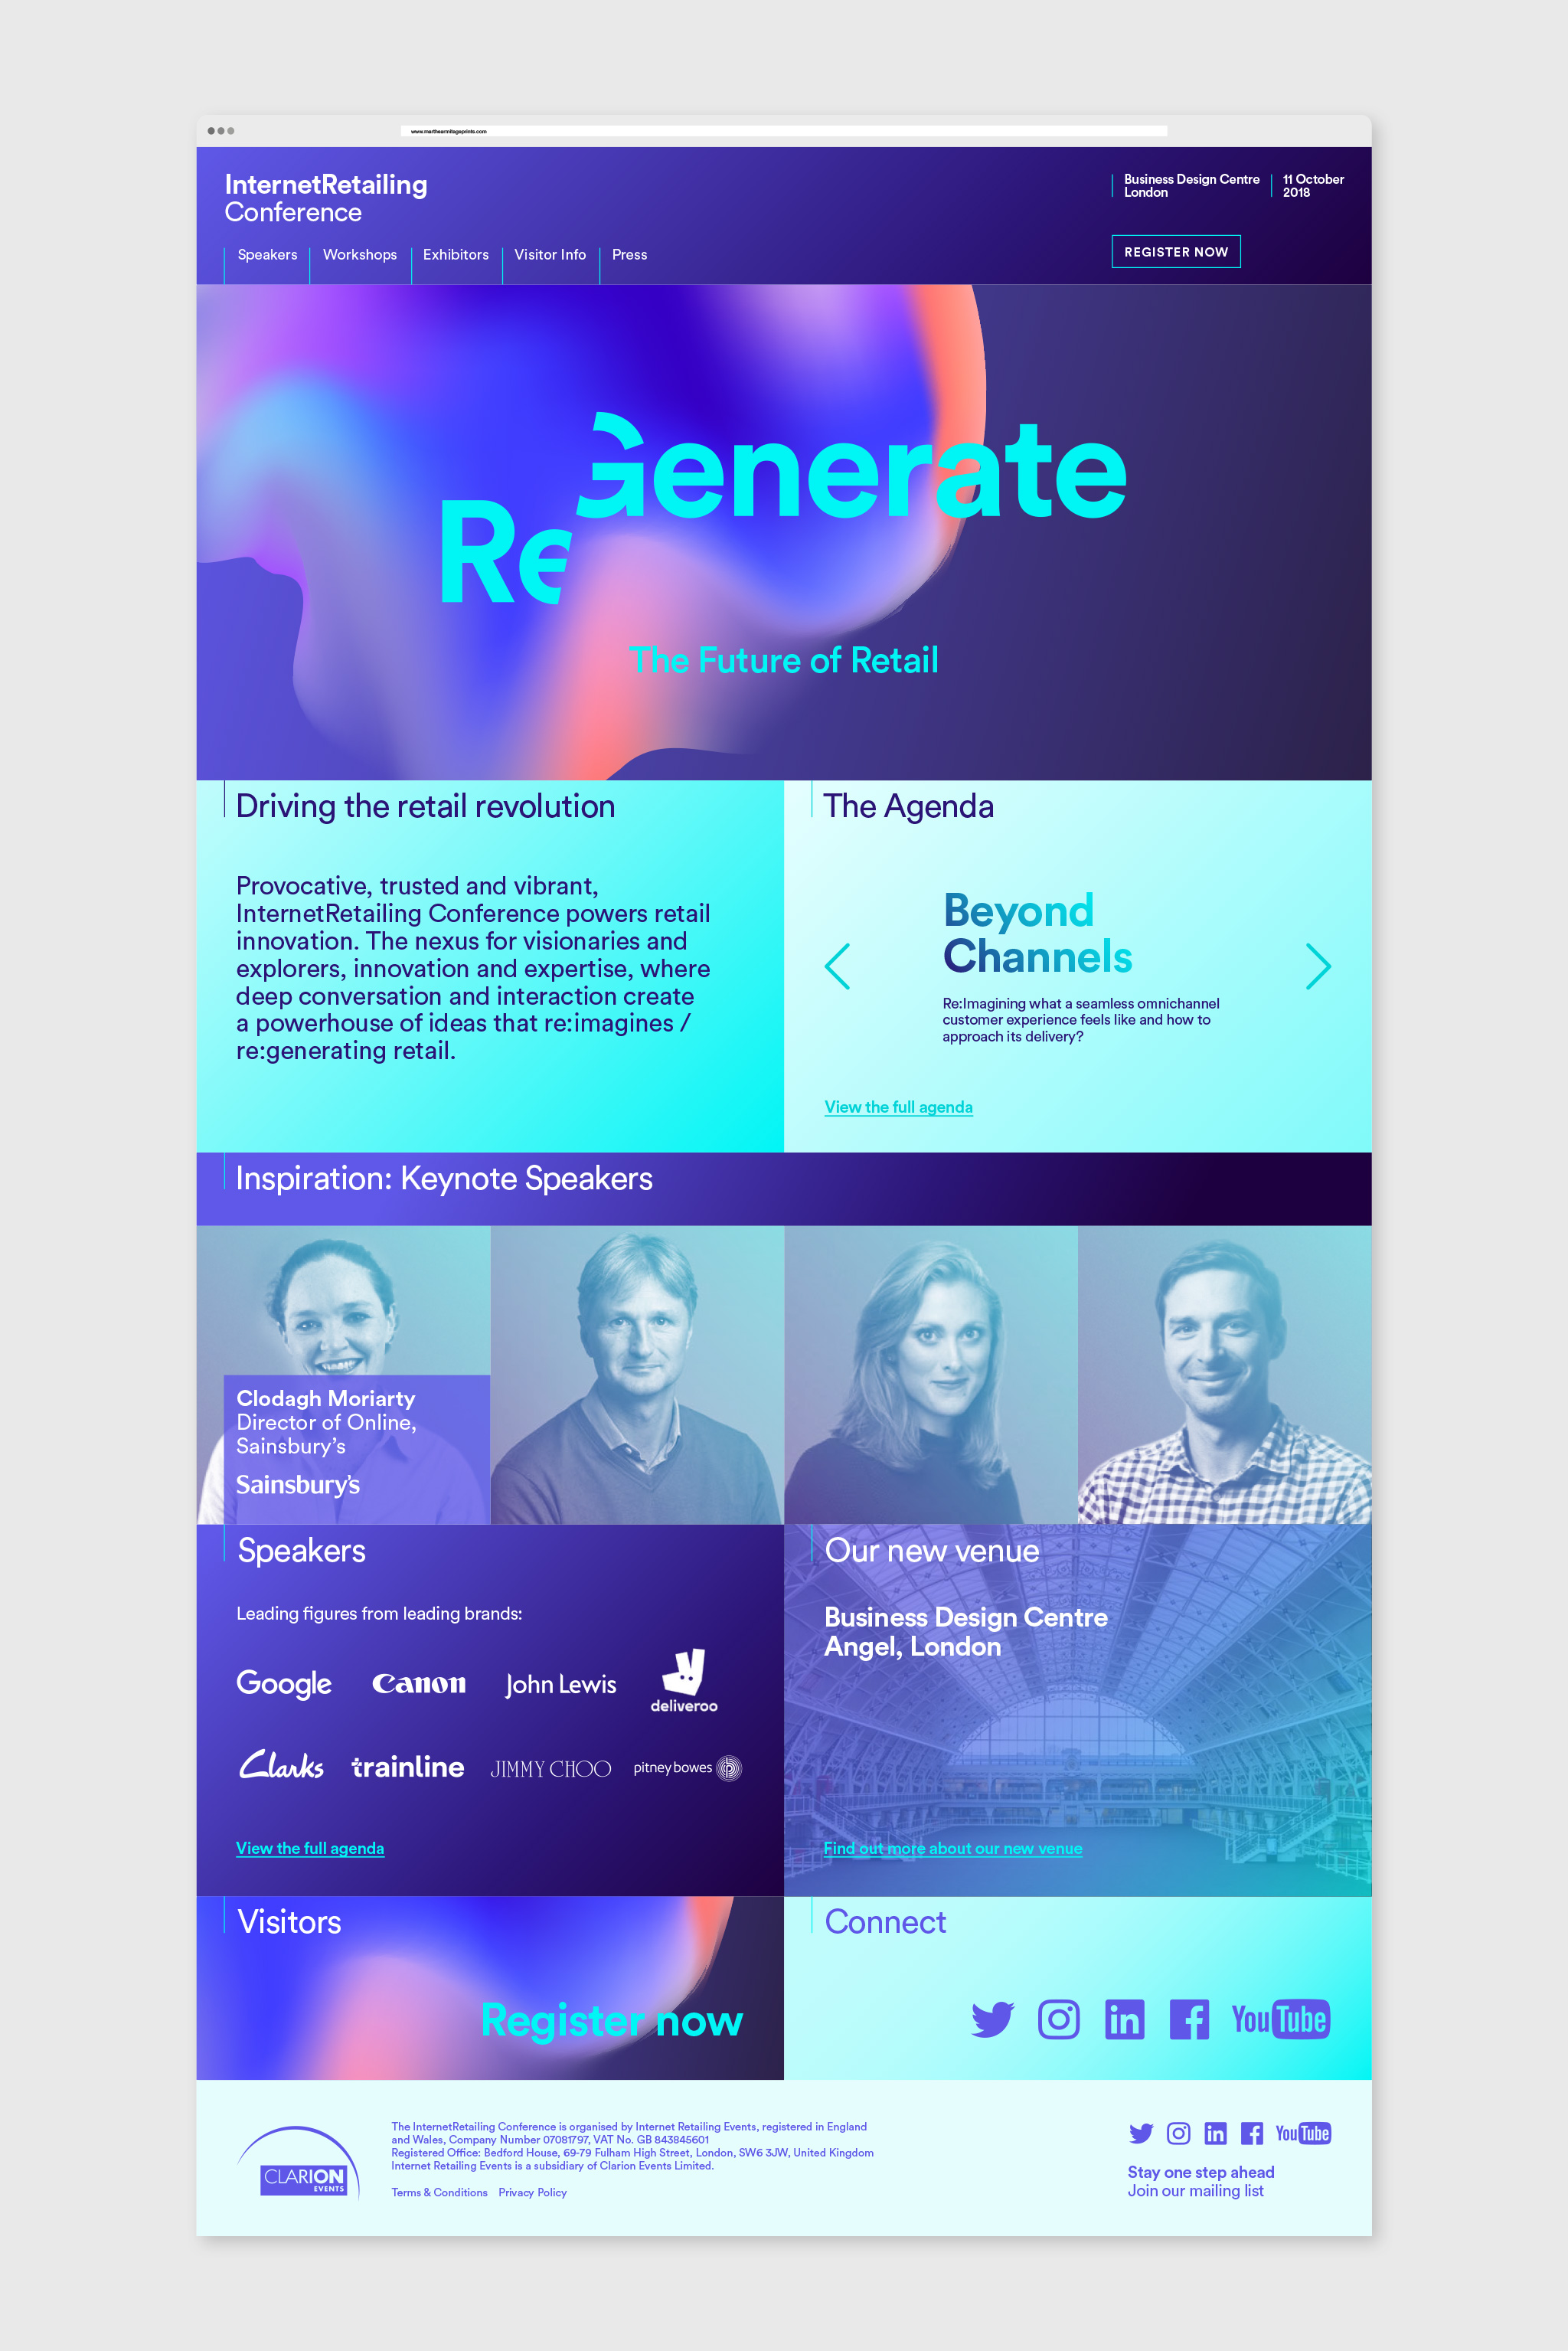 homepage website design of Internet Retailing Conference